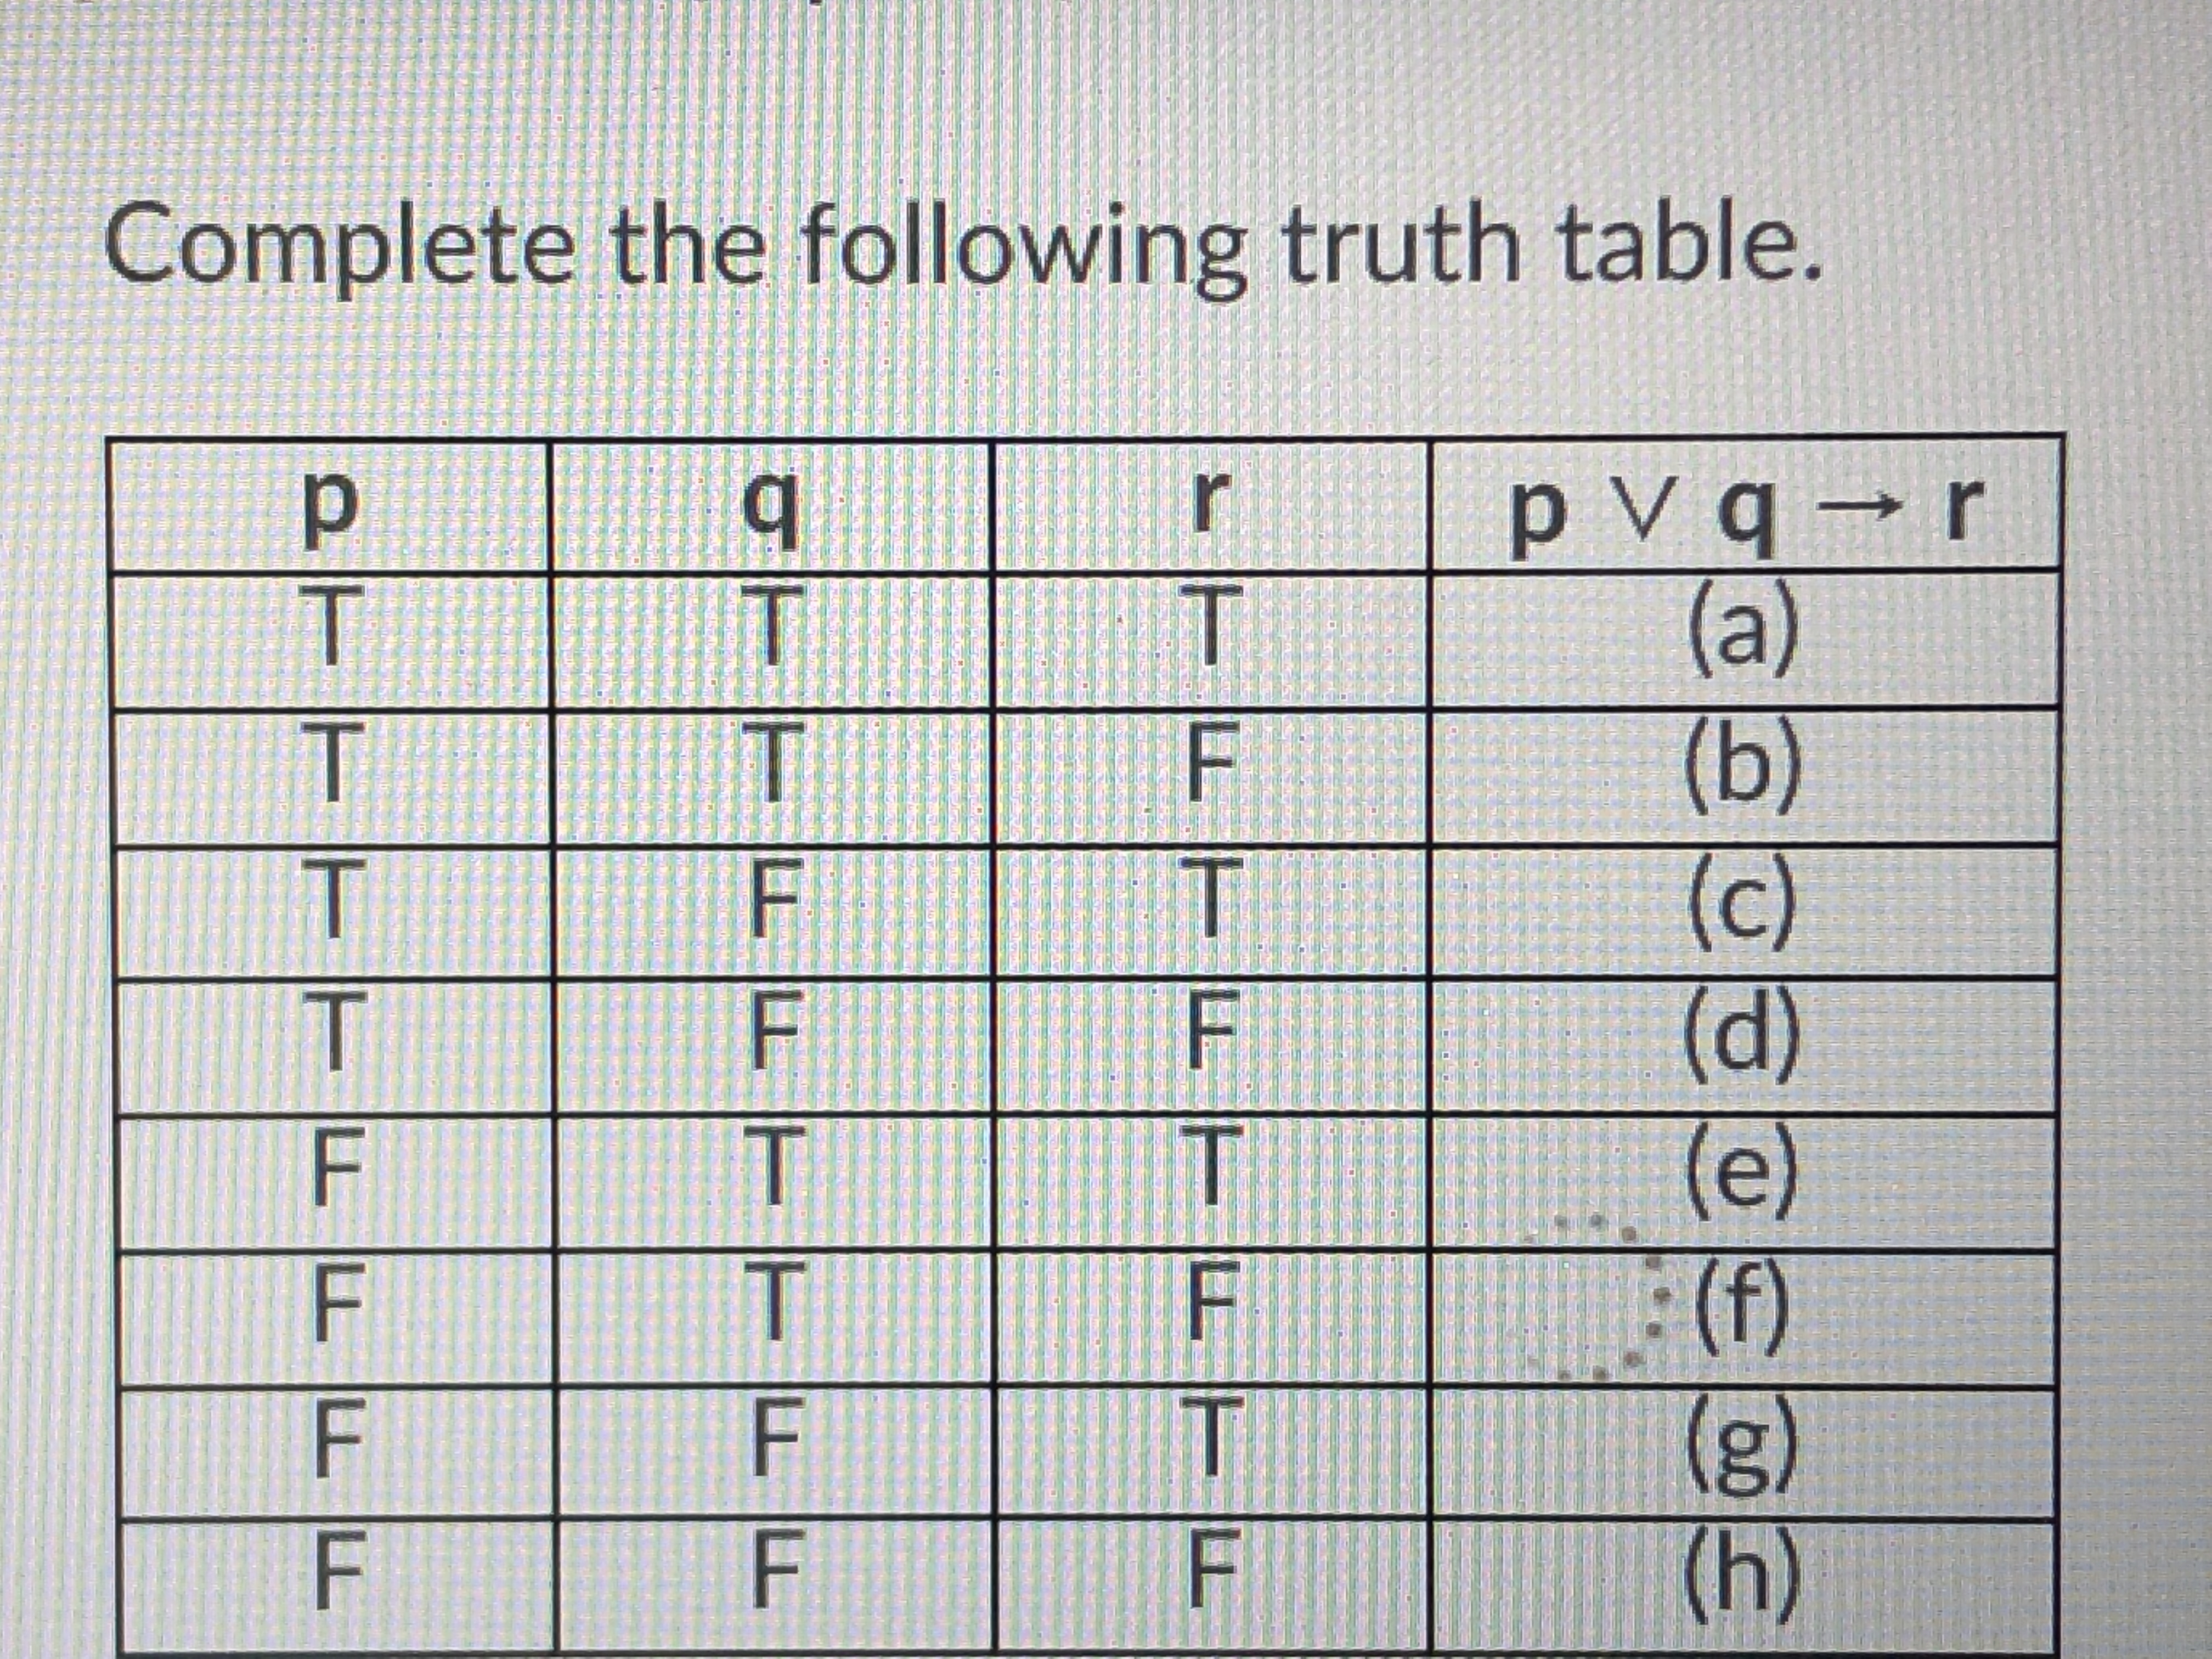 Complete the following truth table ㄒㄧㄧ --(g)